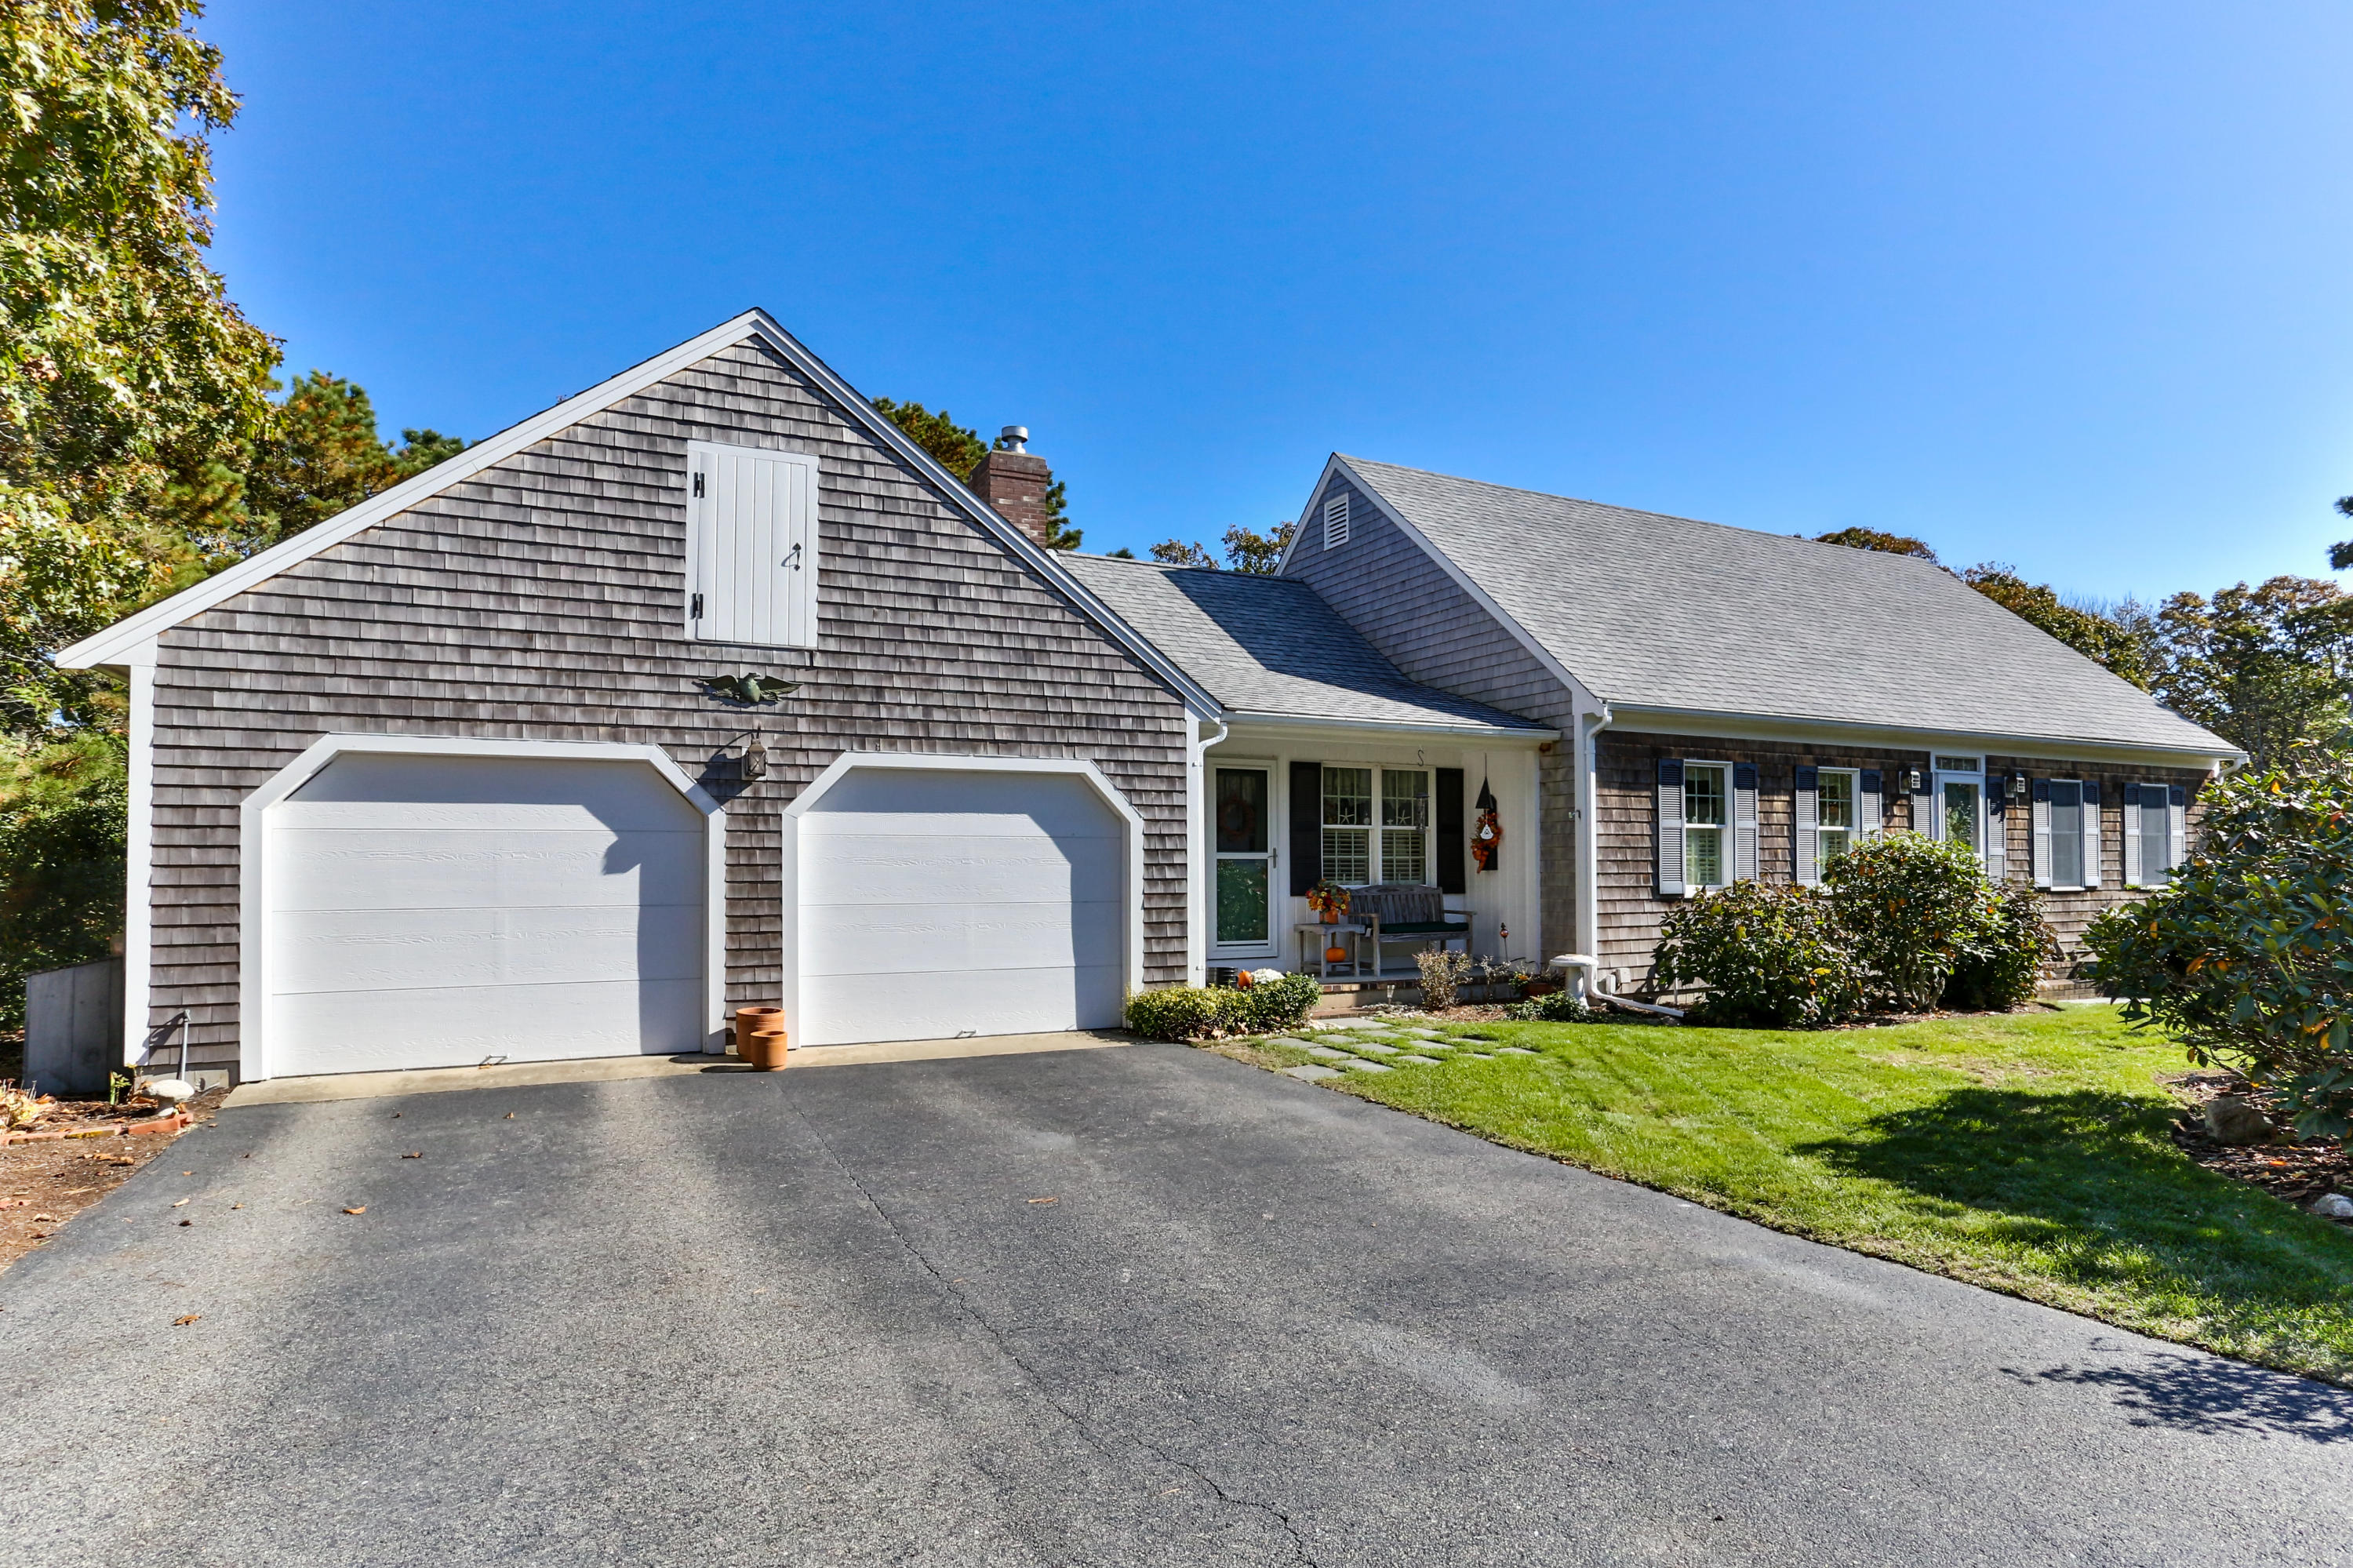 32 East Road, South Chatham MA, 02659 details